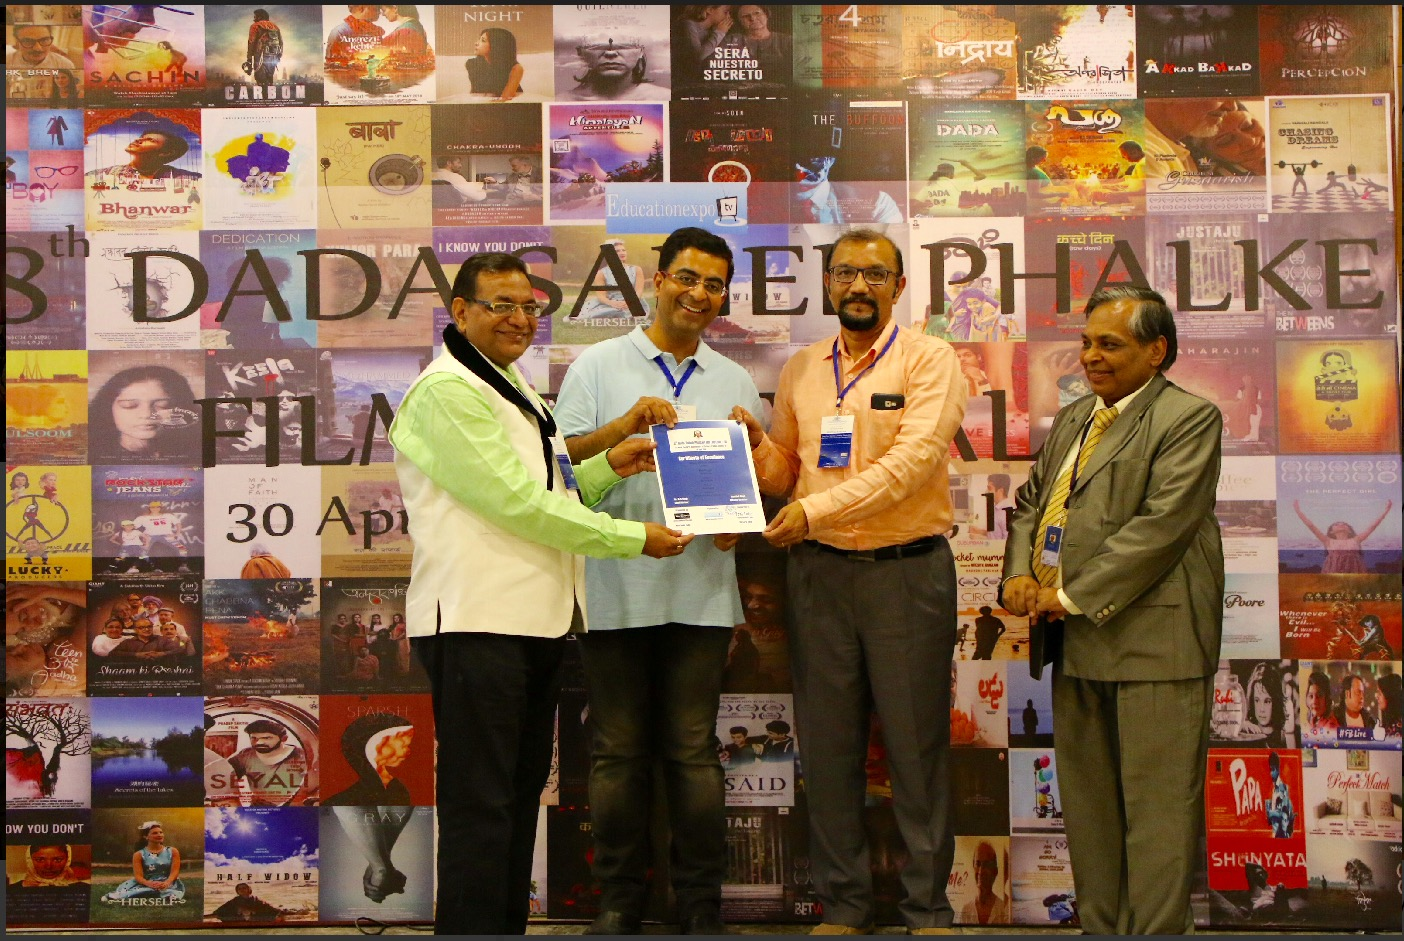 Special thanks to our COO Devendra Reddy [2nd from right] for making it to the Festival to receive the award.